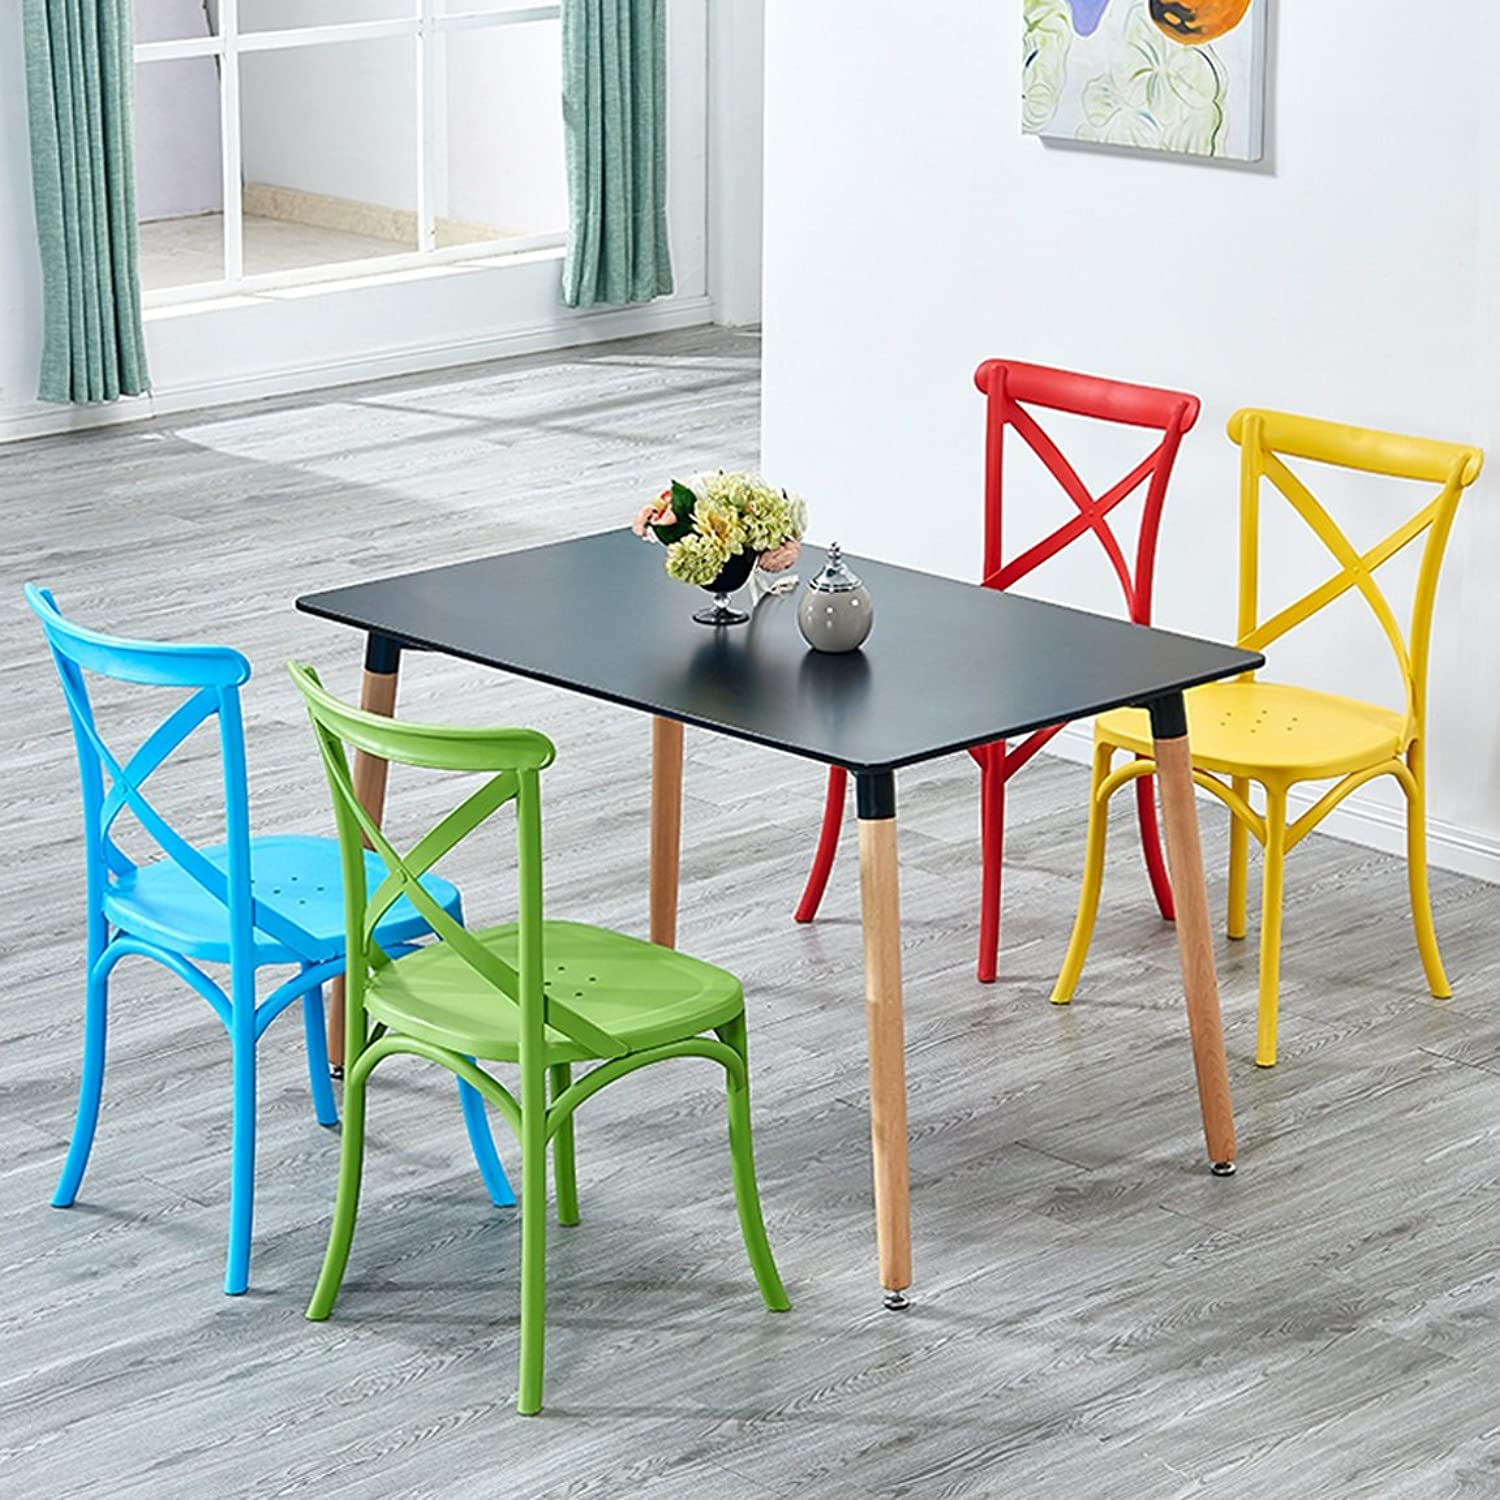 LRW North European Modern Leisure Dining Chair Home Backrest Chair (color   Yellow)